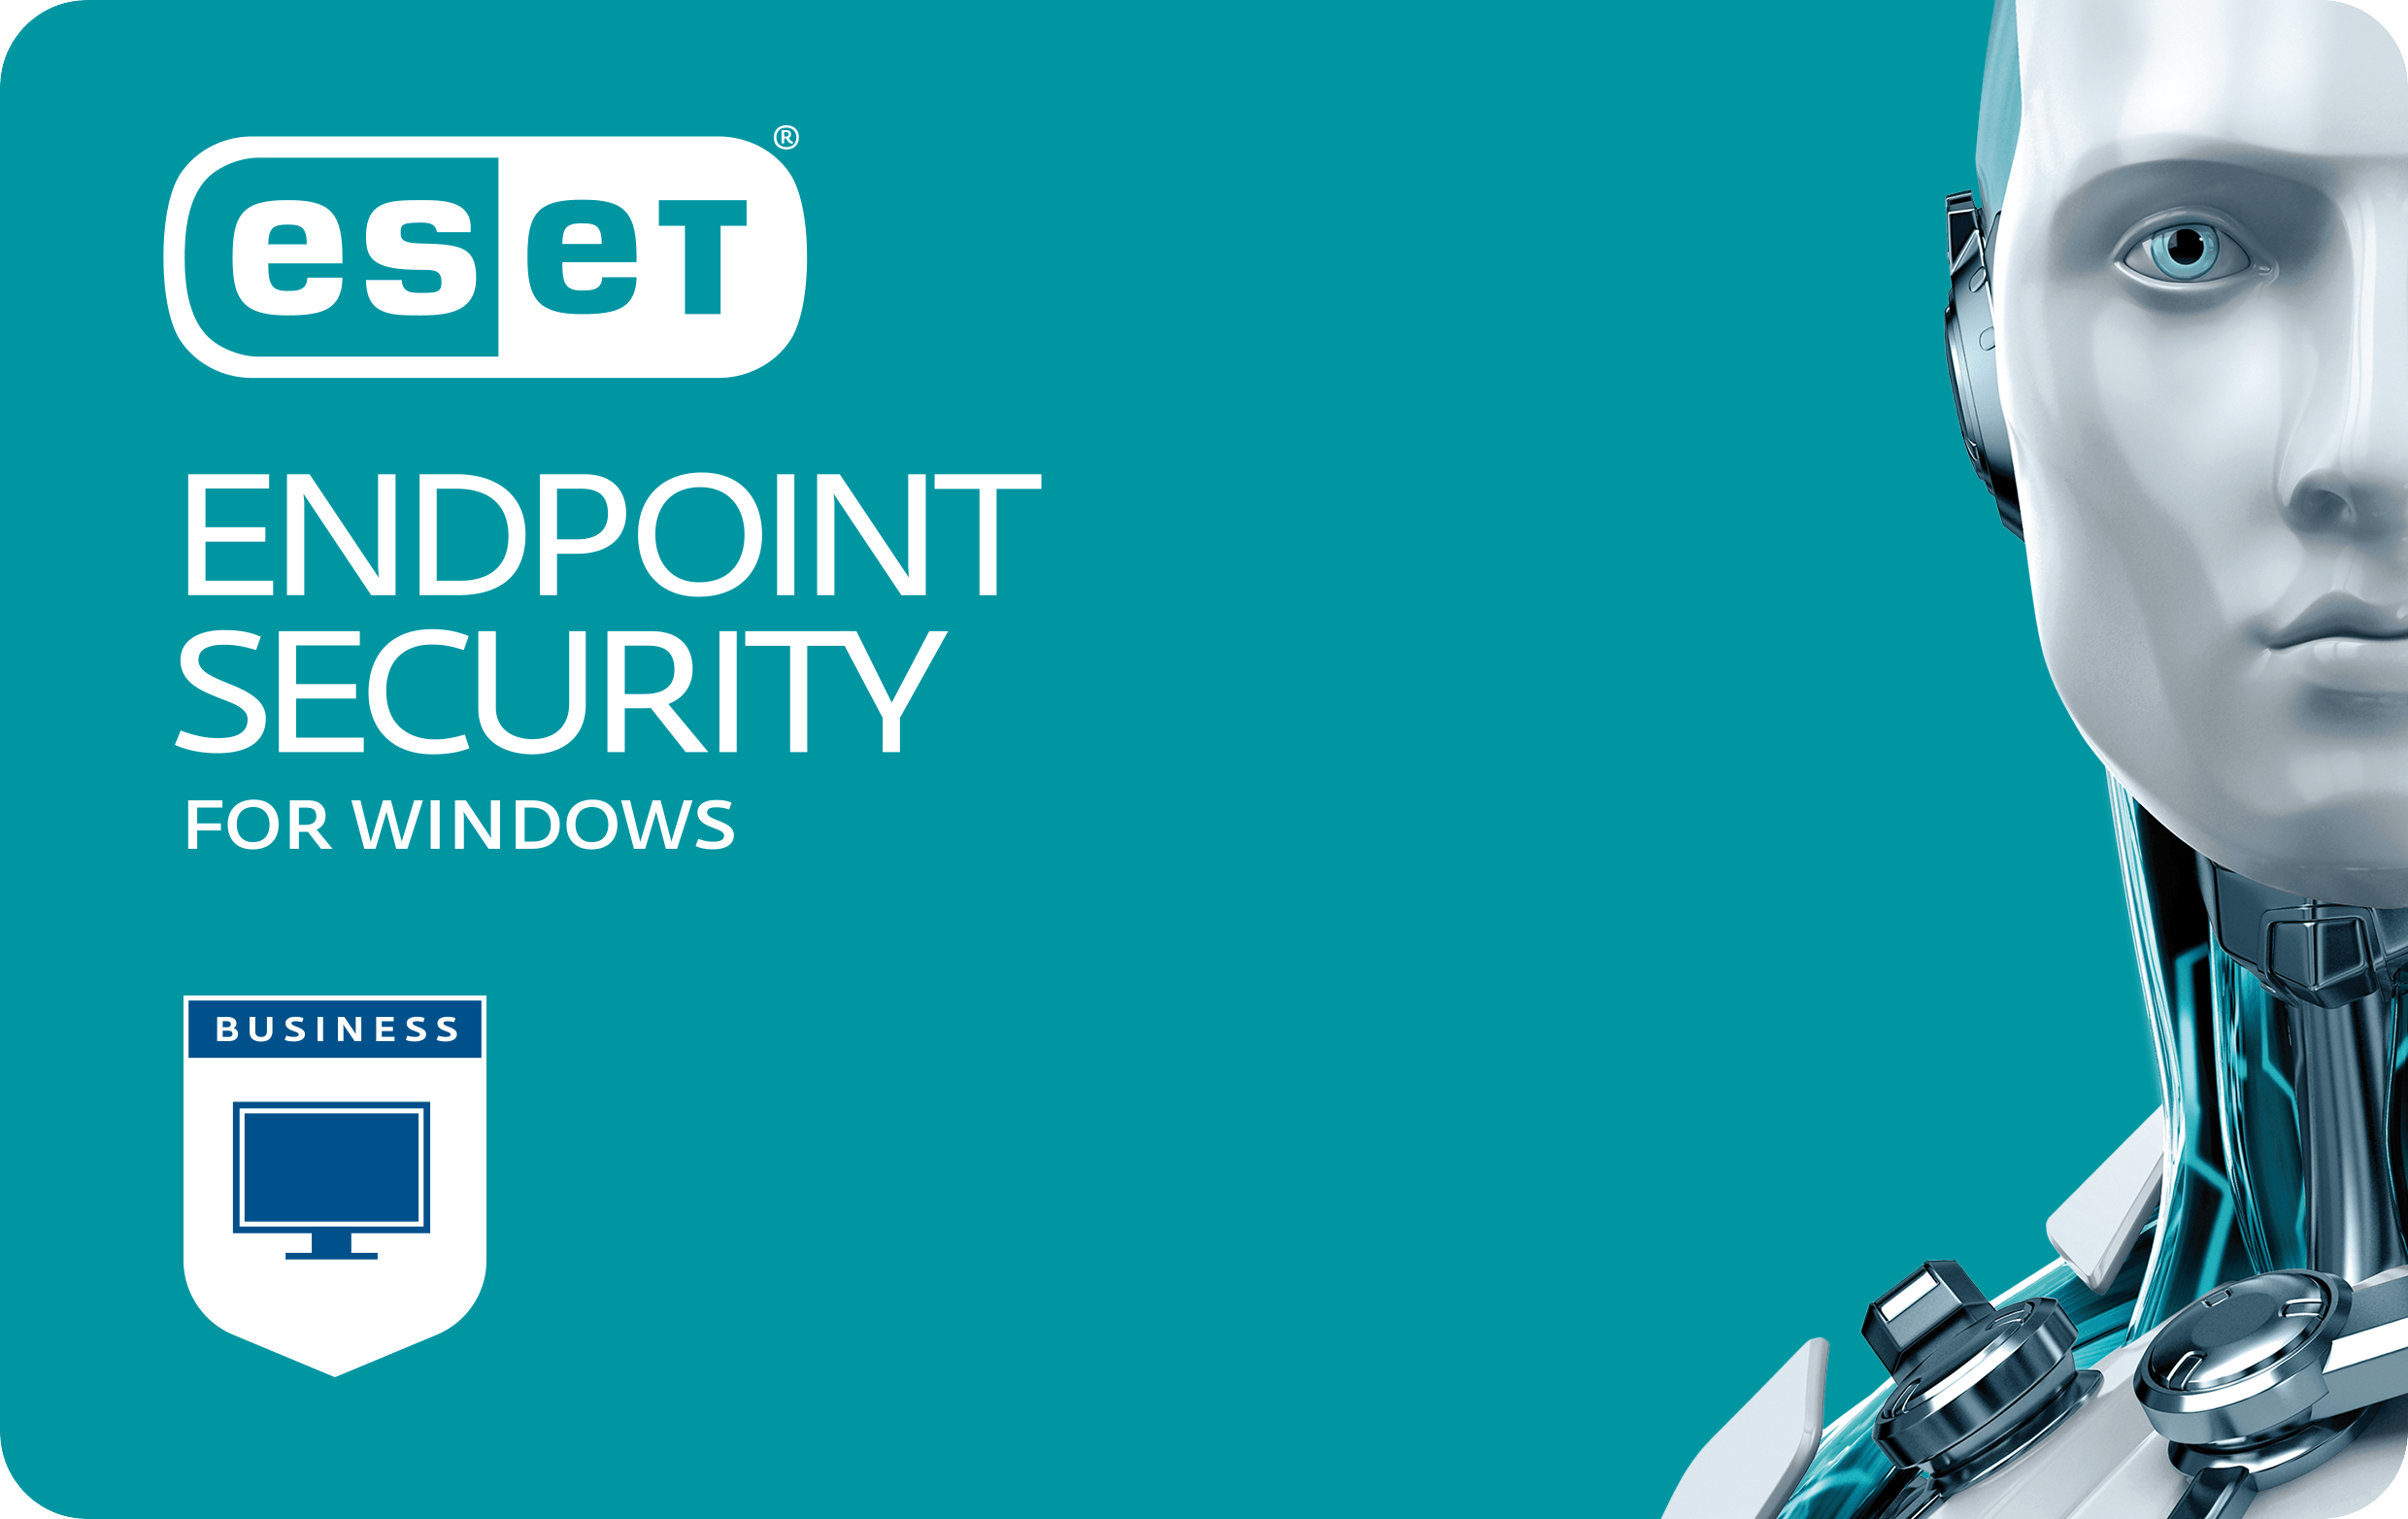 card - ESET Endpoint Security for Windows - RGB